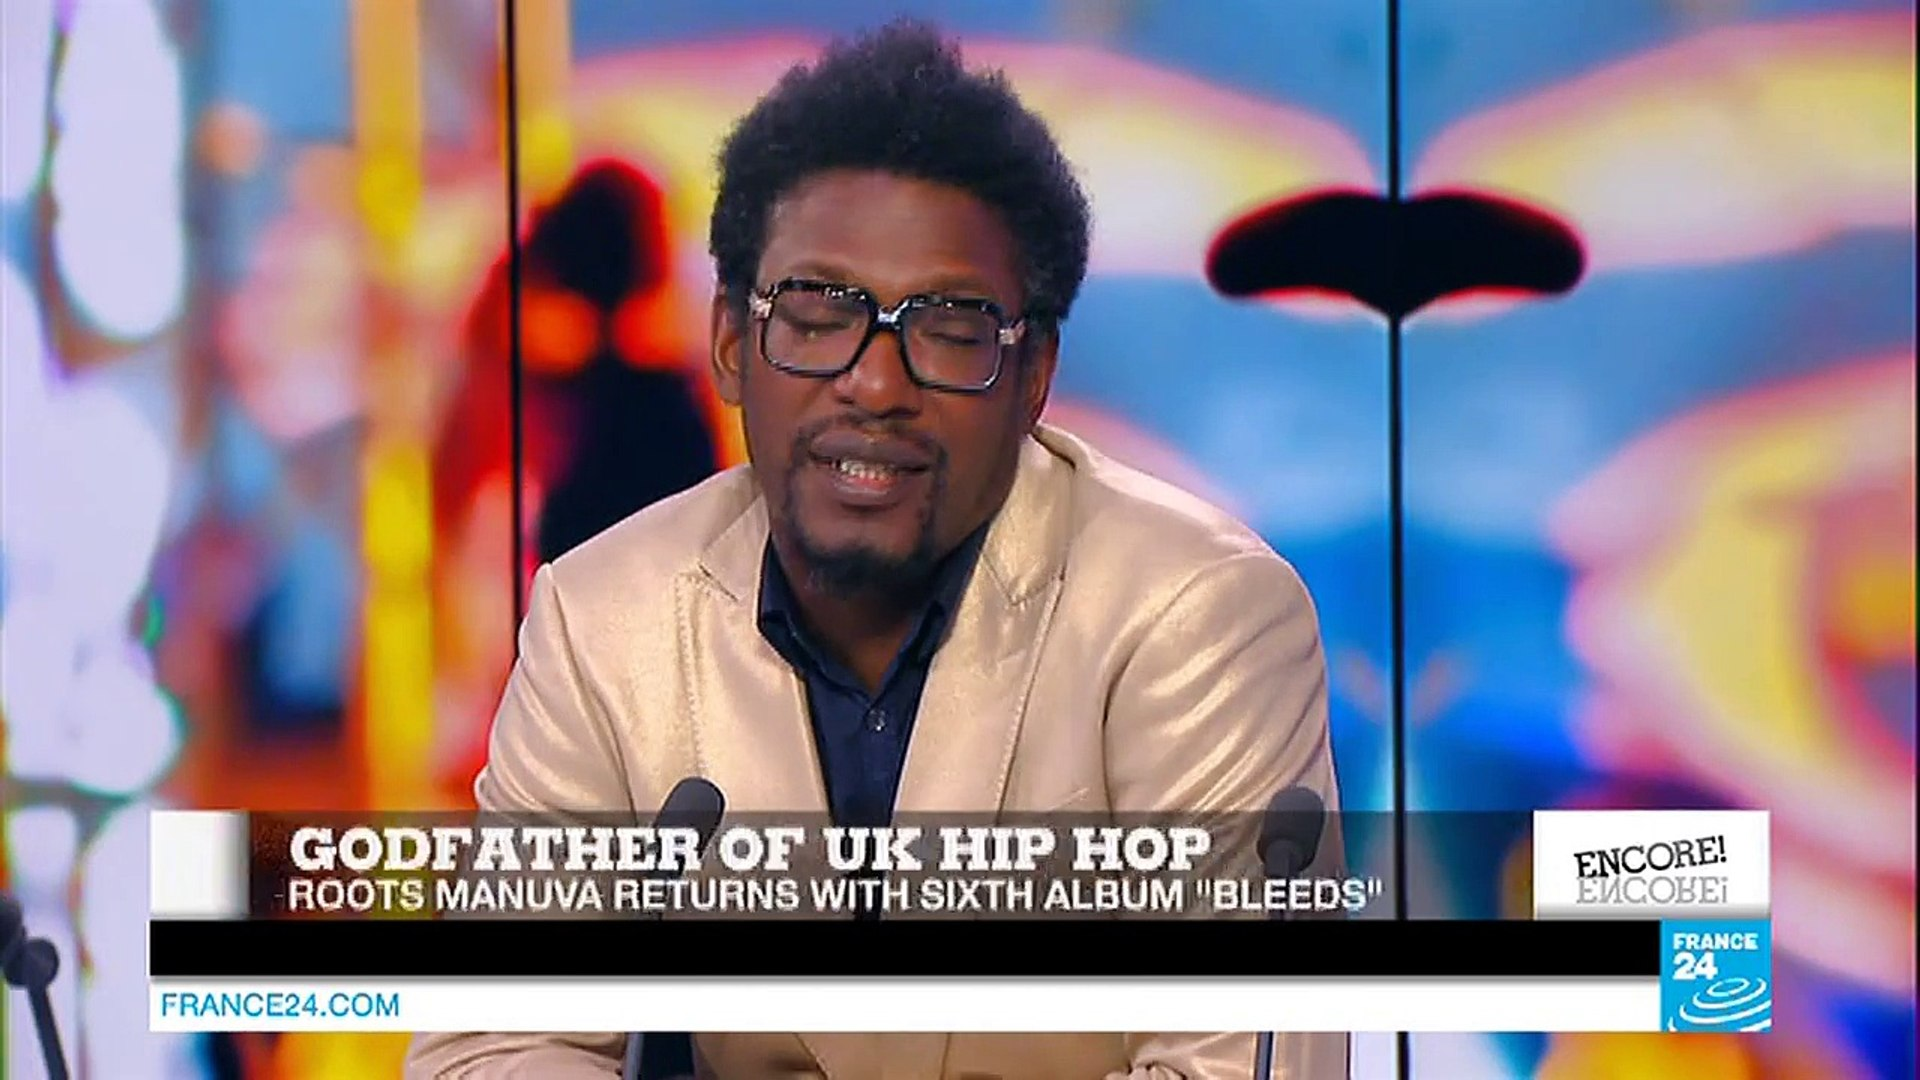 Music show: Roots Manuva, Avicii and Sam Smith's Bond song